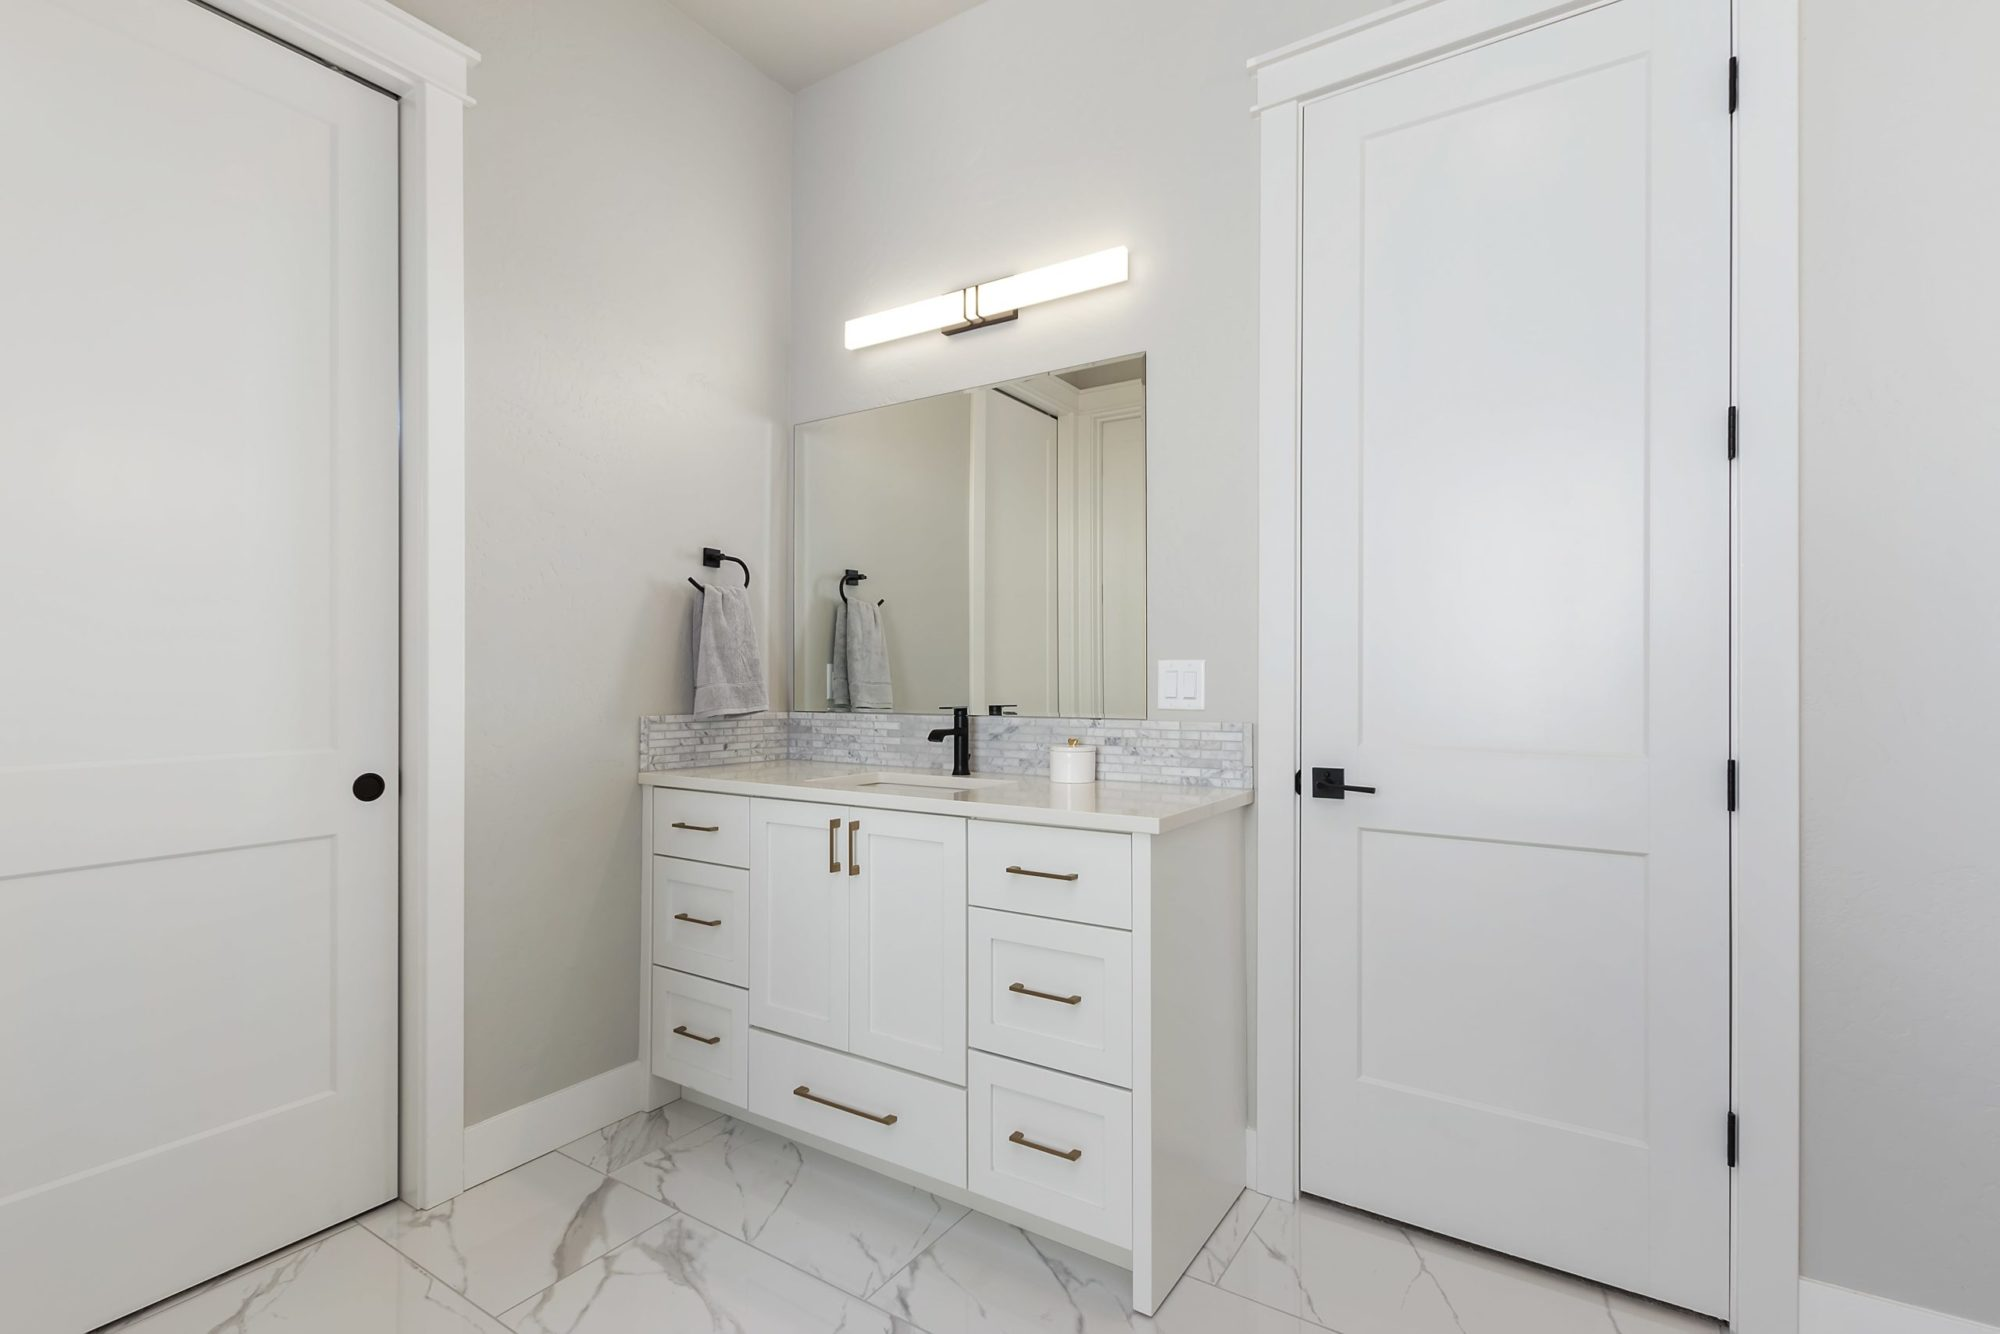 A modern looking bathroom with customs cabinets and doors.